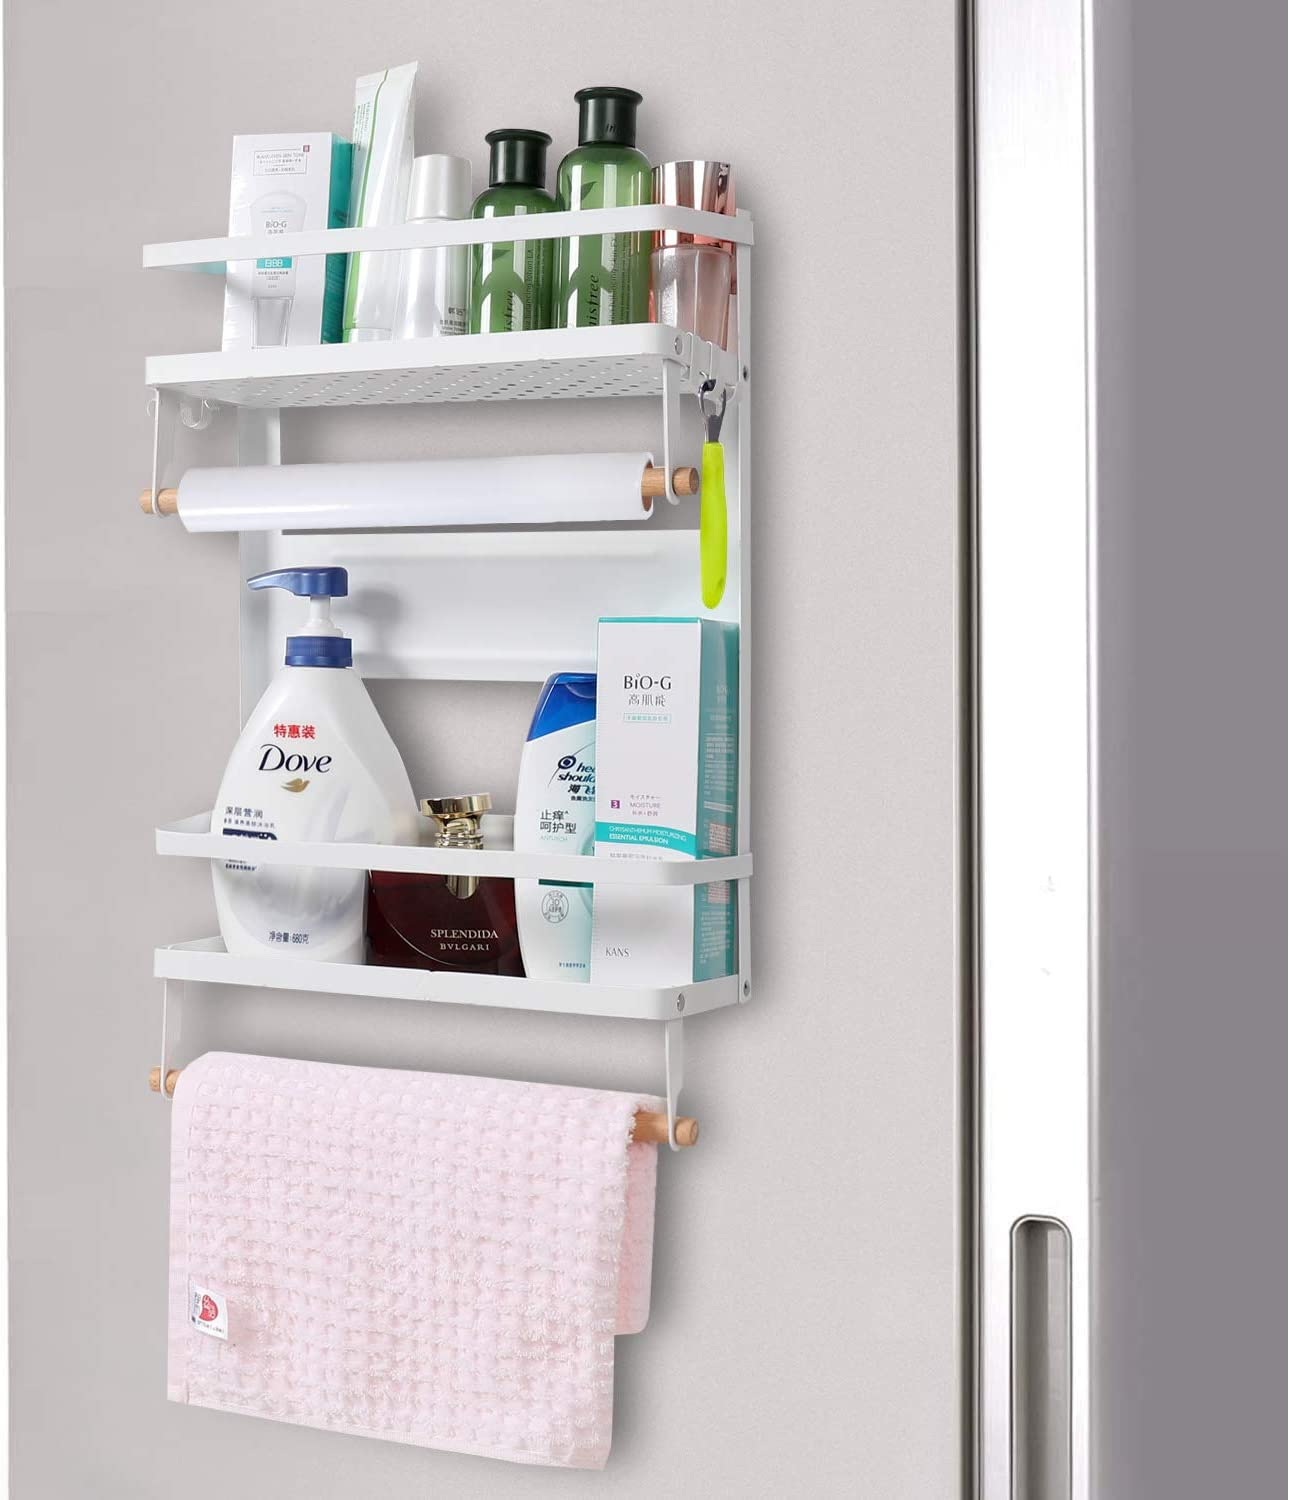 Fortry Magnetic Fridge Spice Racks Organizer with 5 Removable Hooks, Magnet Kitchen Organizer Shelf for Refrigerator, Large Magnetic Paper Towel Roll Holder for Fridge, Freezer, White